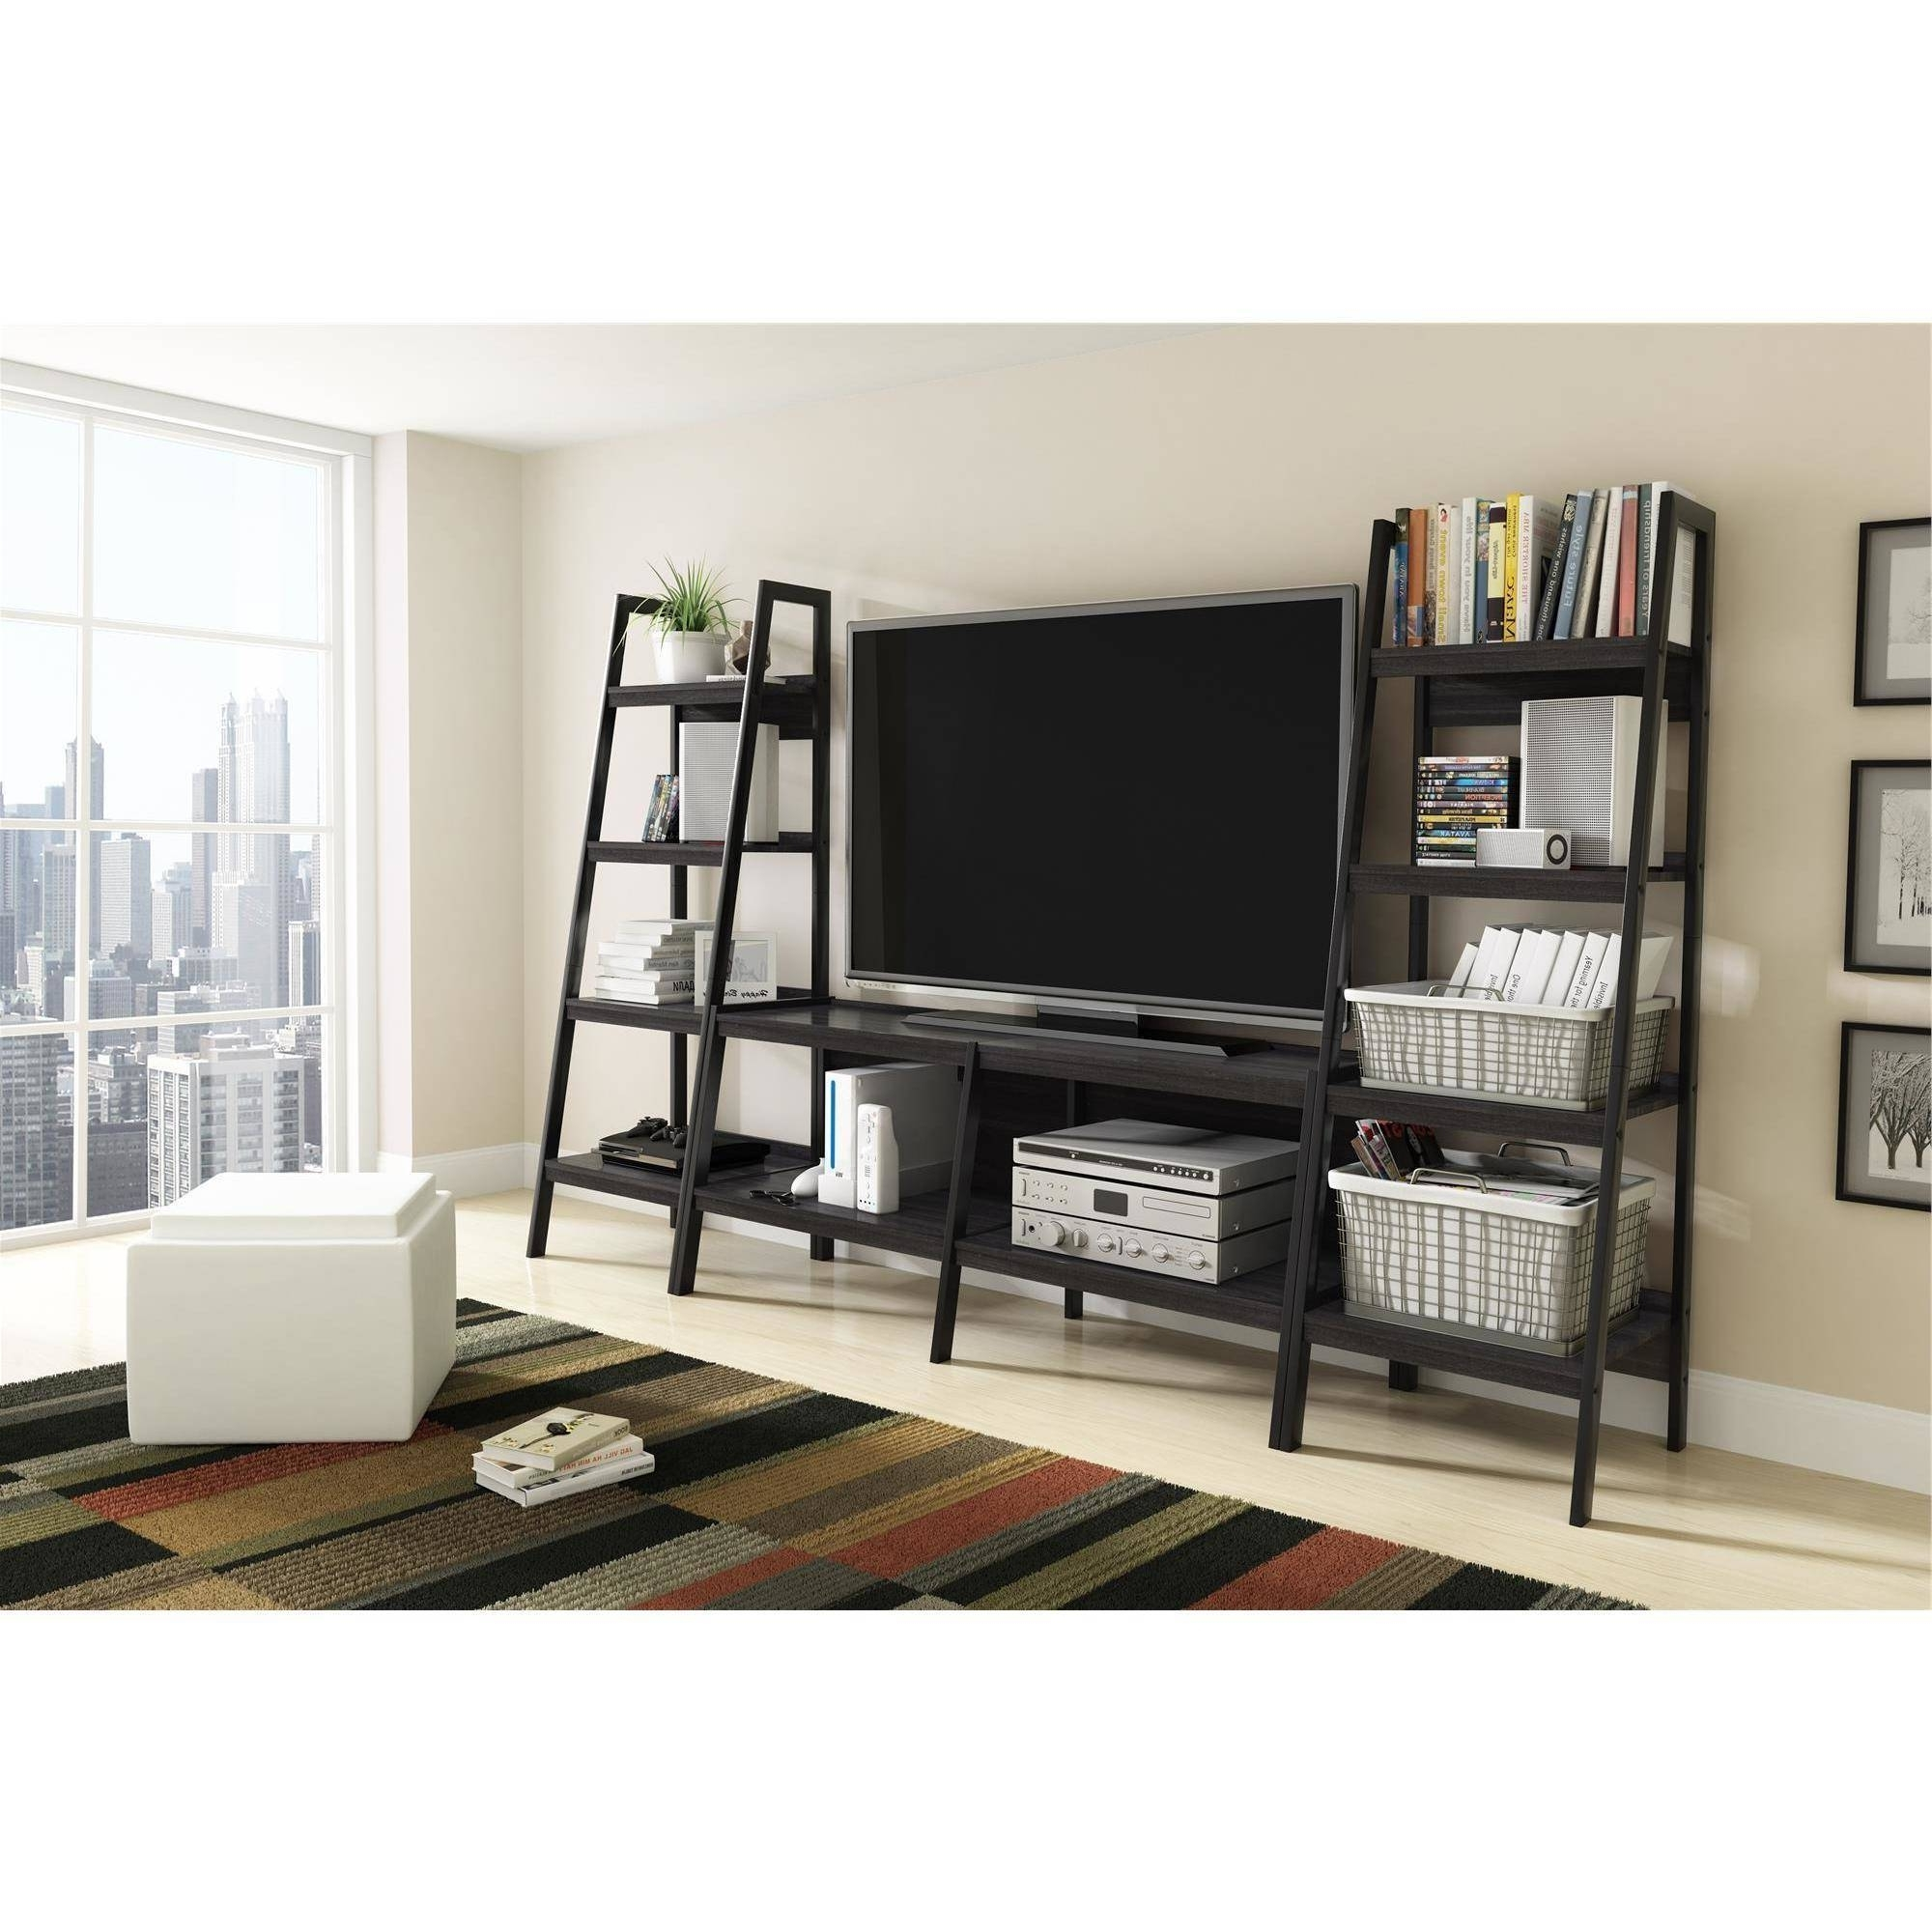 Most Up To Date Wall Units: Inspiring Entertainment Centers With Bookshelves Pertaining To Tv Bookshelves (View 13 of 15)